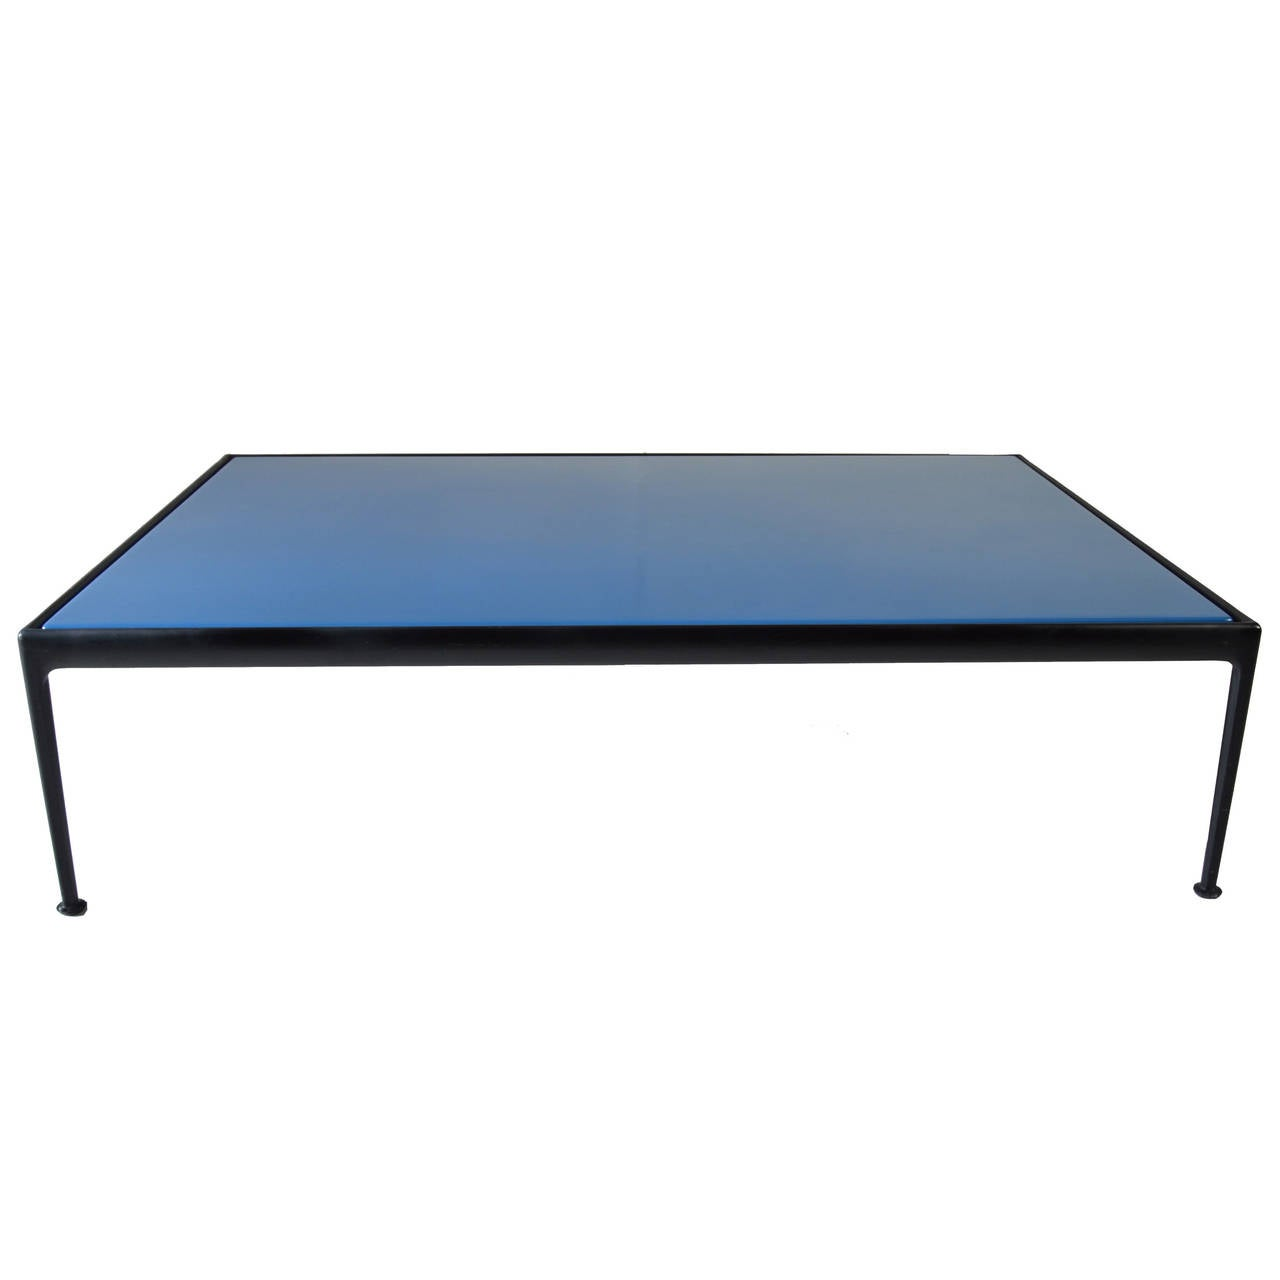 Richard Schultz For Knoll Outdoor Coffee Table In Rare Blue And Black At 1stdibs